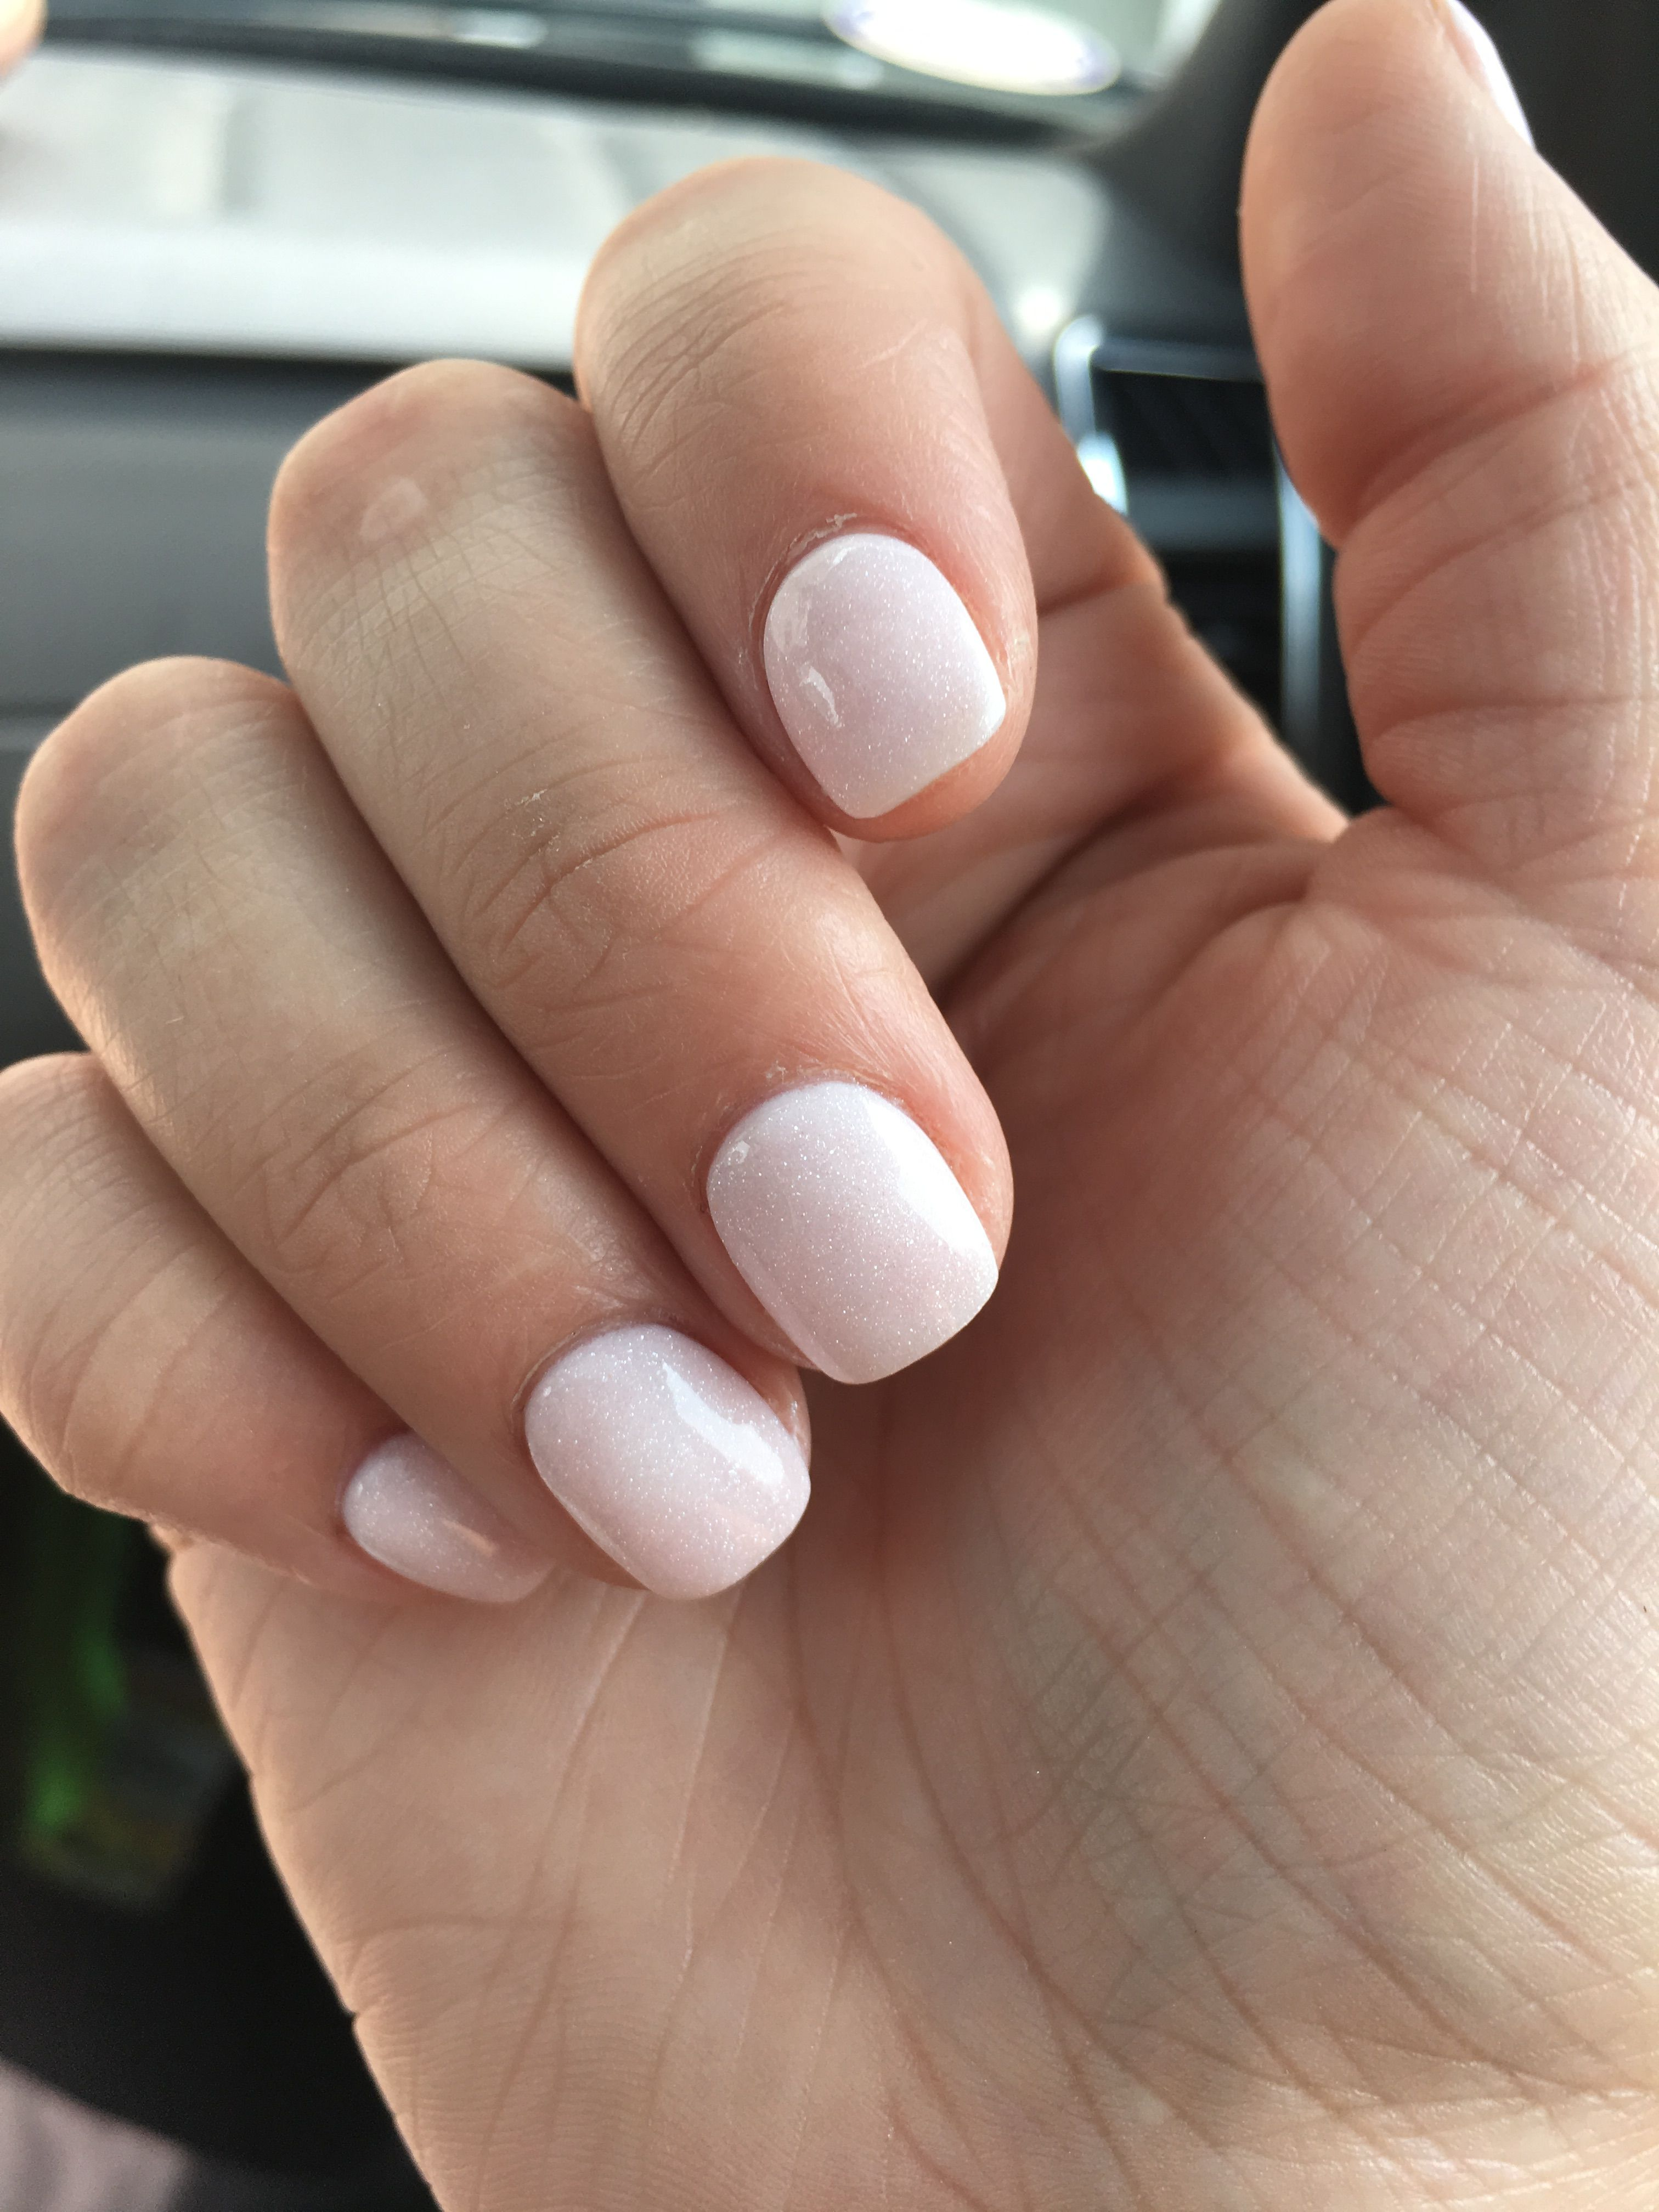 Light Pink Almost White Squoval Nails With A Little Bit Of Shimmer Squoval Nails Squoval Acrylic Nails Light Pink Nails